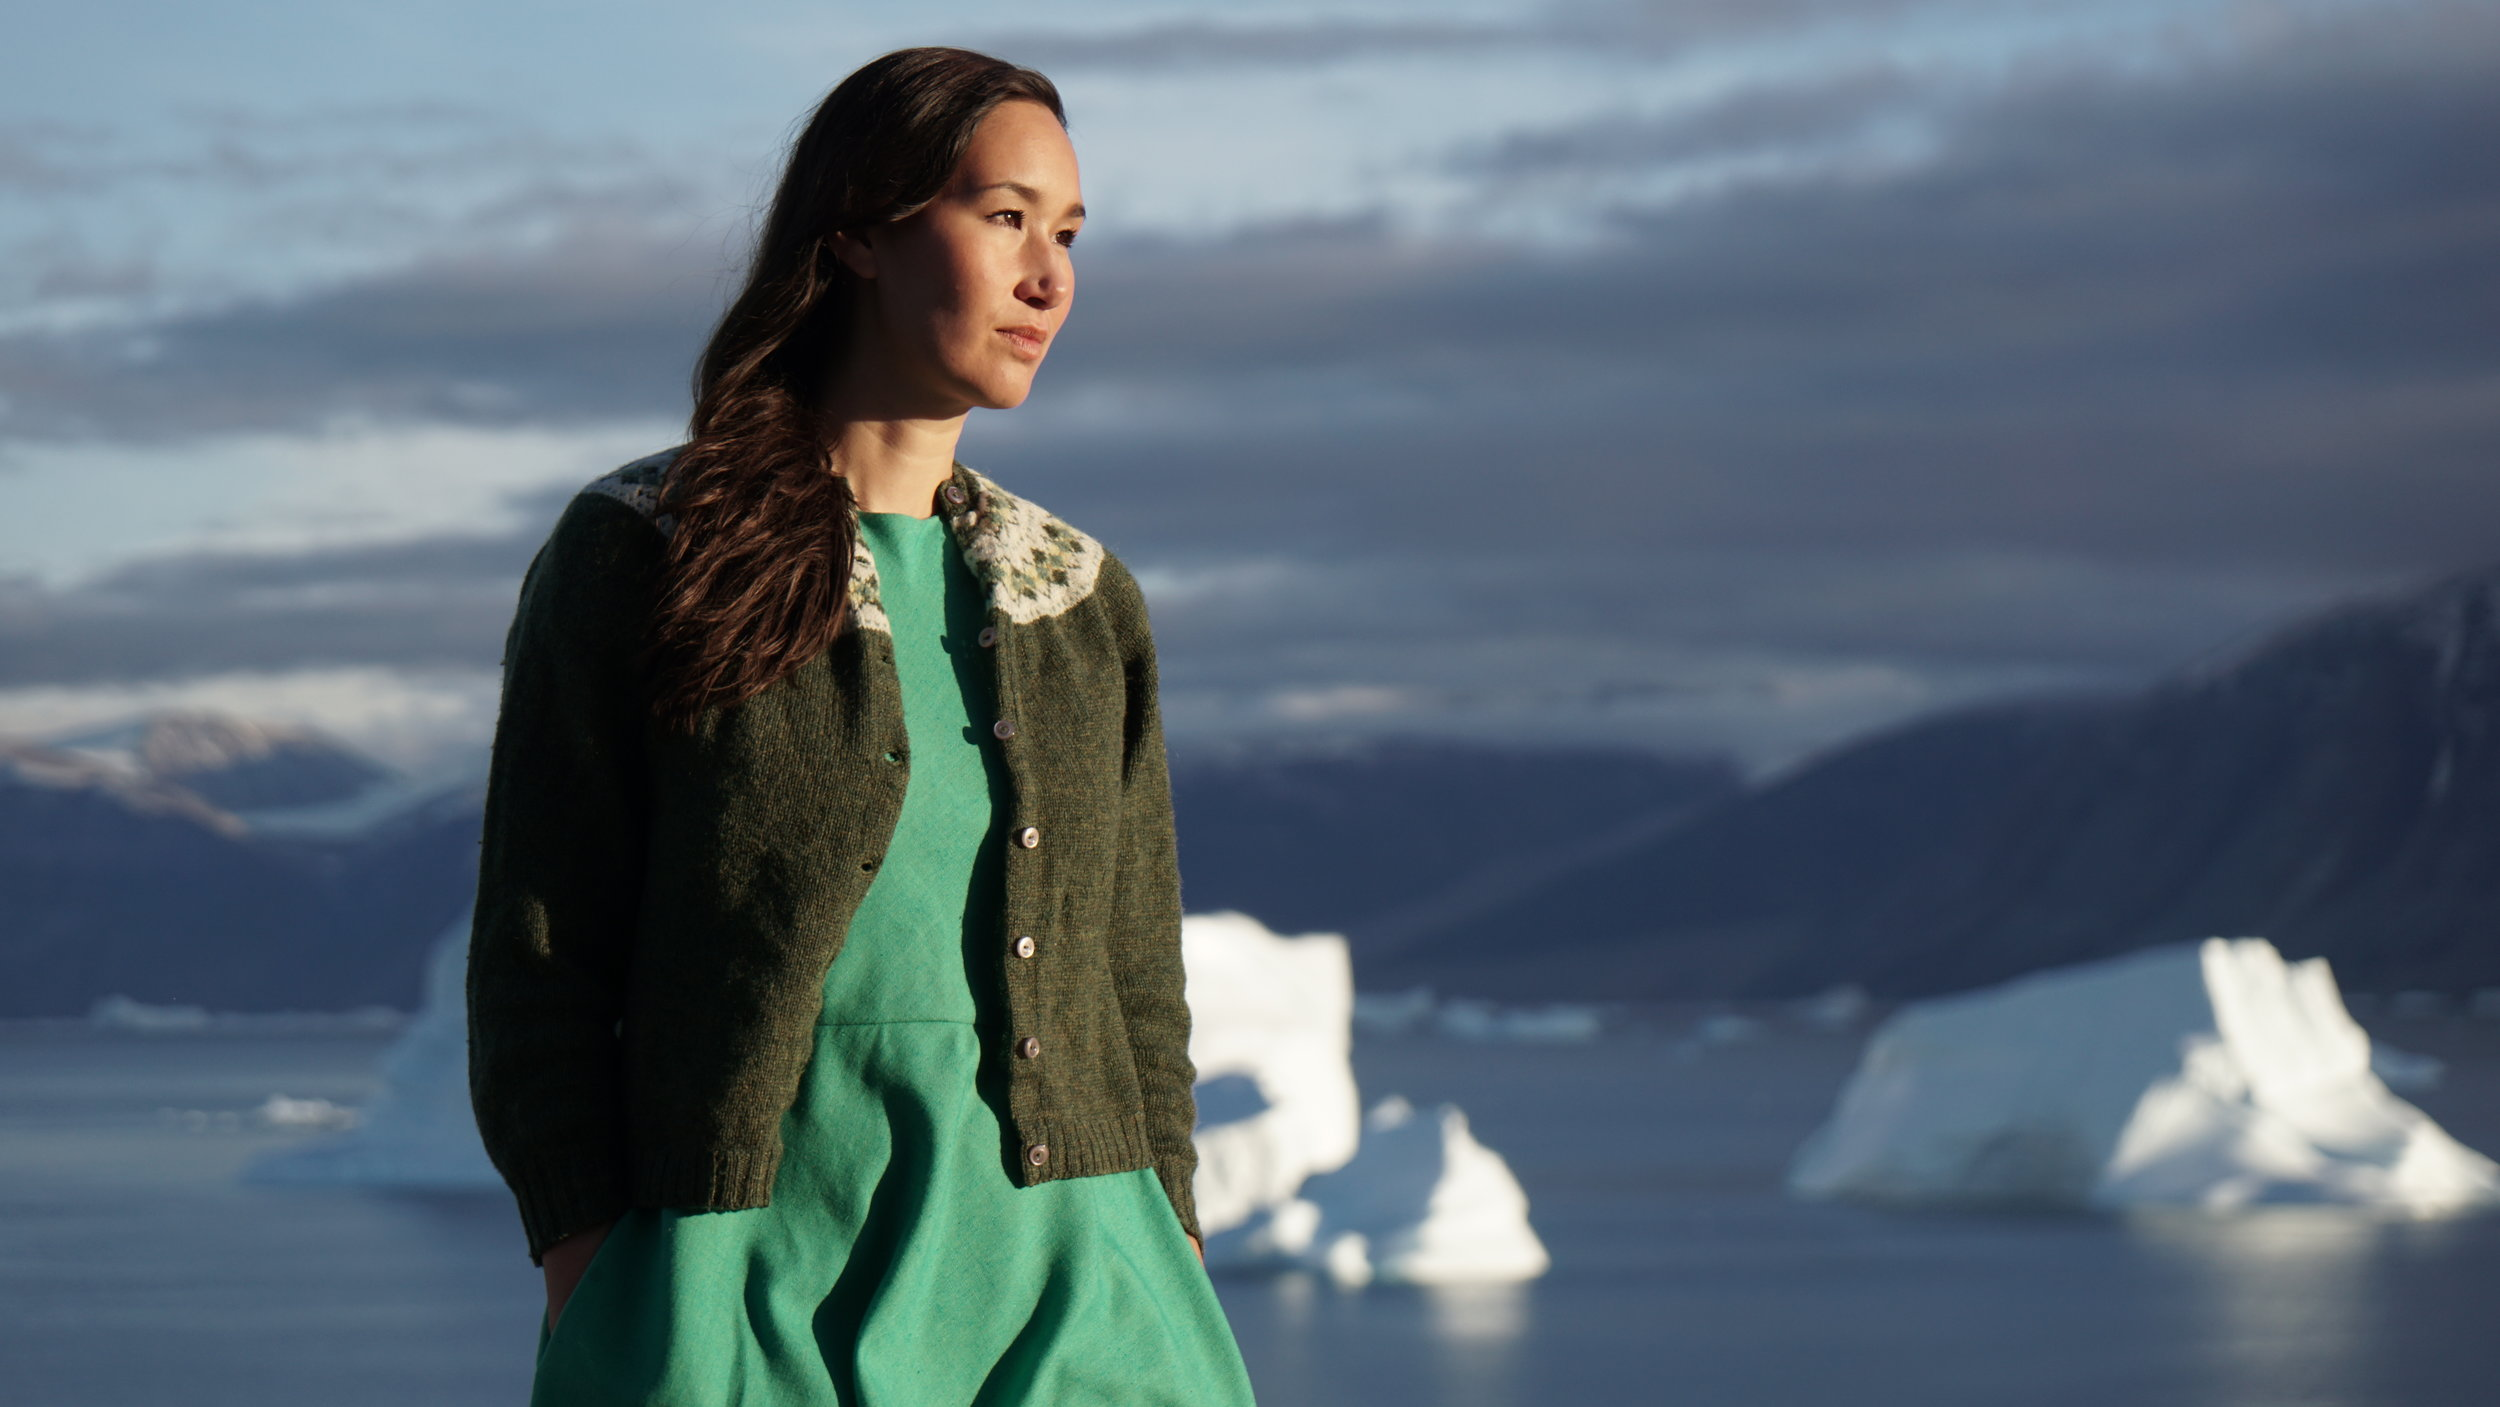 NIVE NIELSEN PUTS GREENLAND ON THE MUSICAL MAP - Nive Nielsen quickly gained attention for her beautiful voice and the charming Inuit indie rock and folk songs of her band, Nive & The Deer Children.